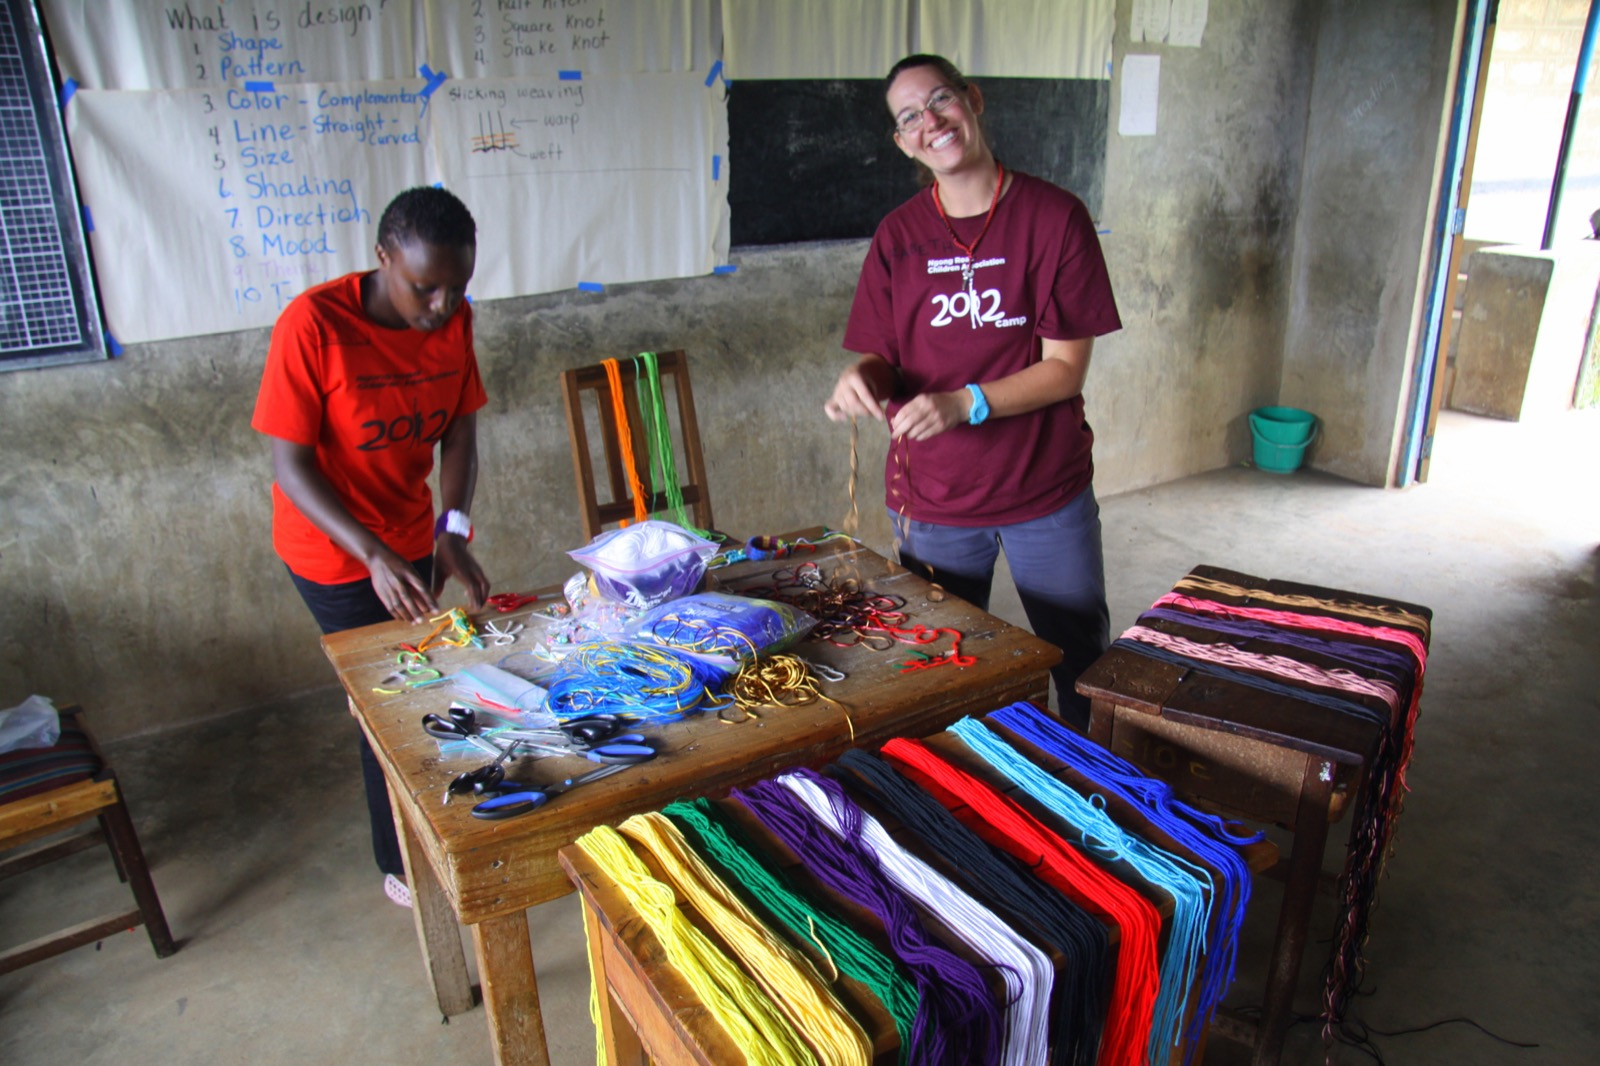 Two participants in red shirts stand next to tables covered with yarn, and smile.